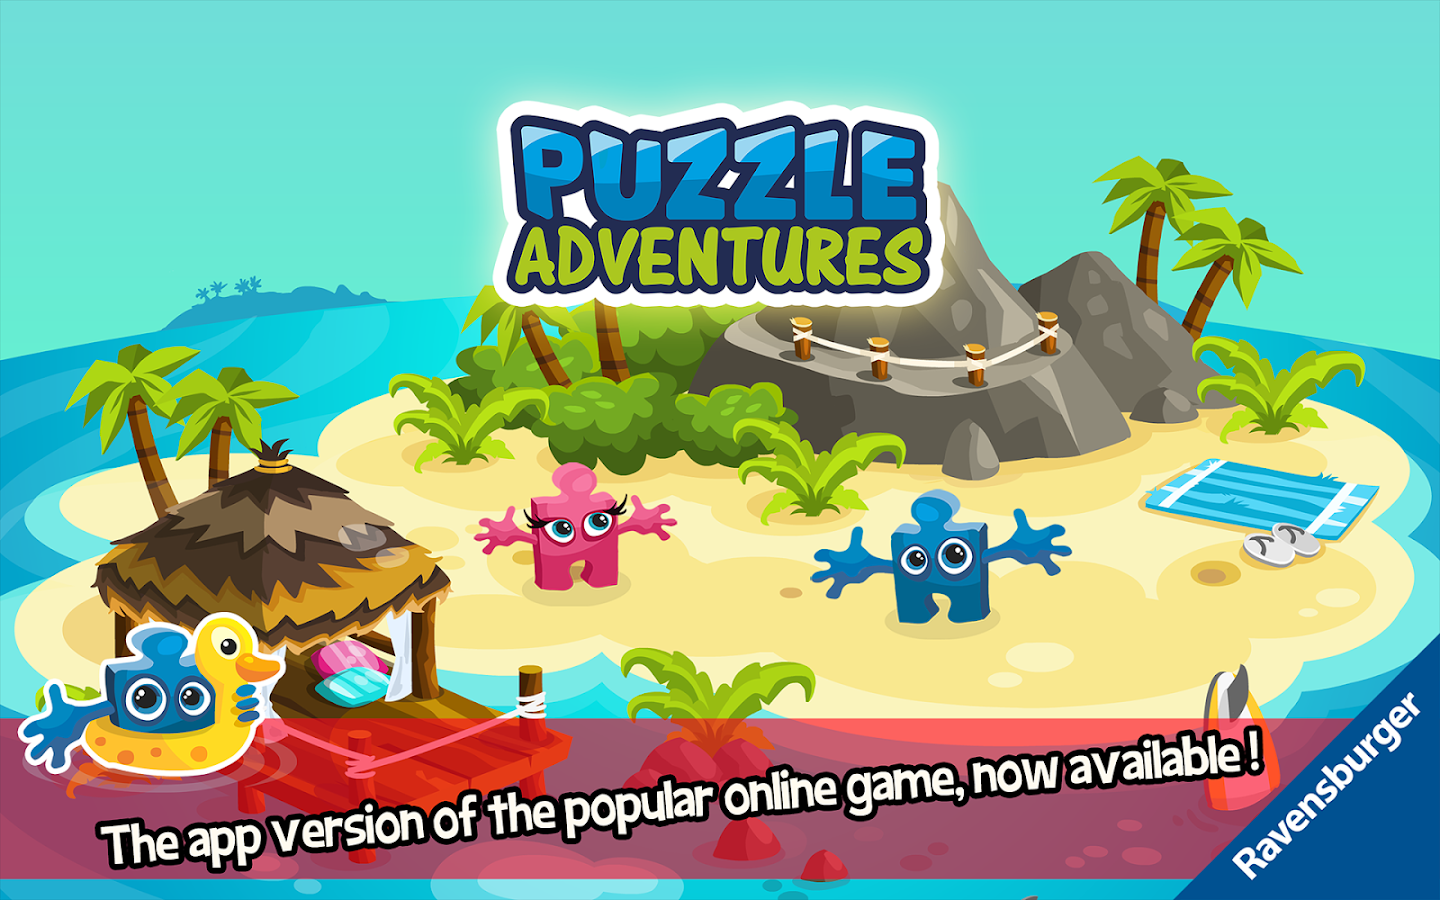 Puzzle Adventures Screenshot 10